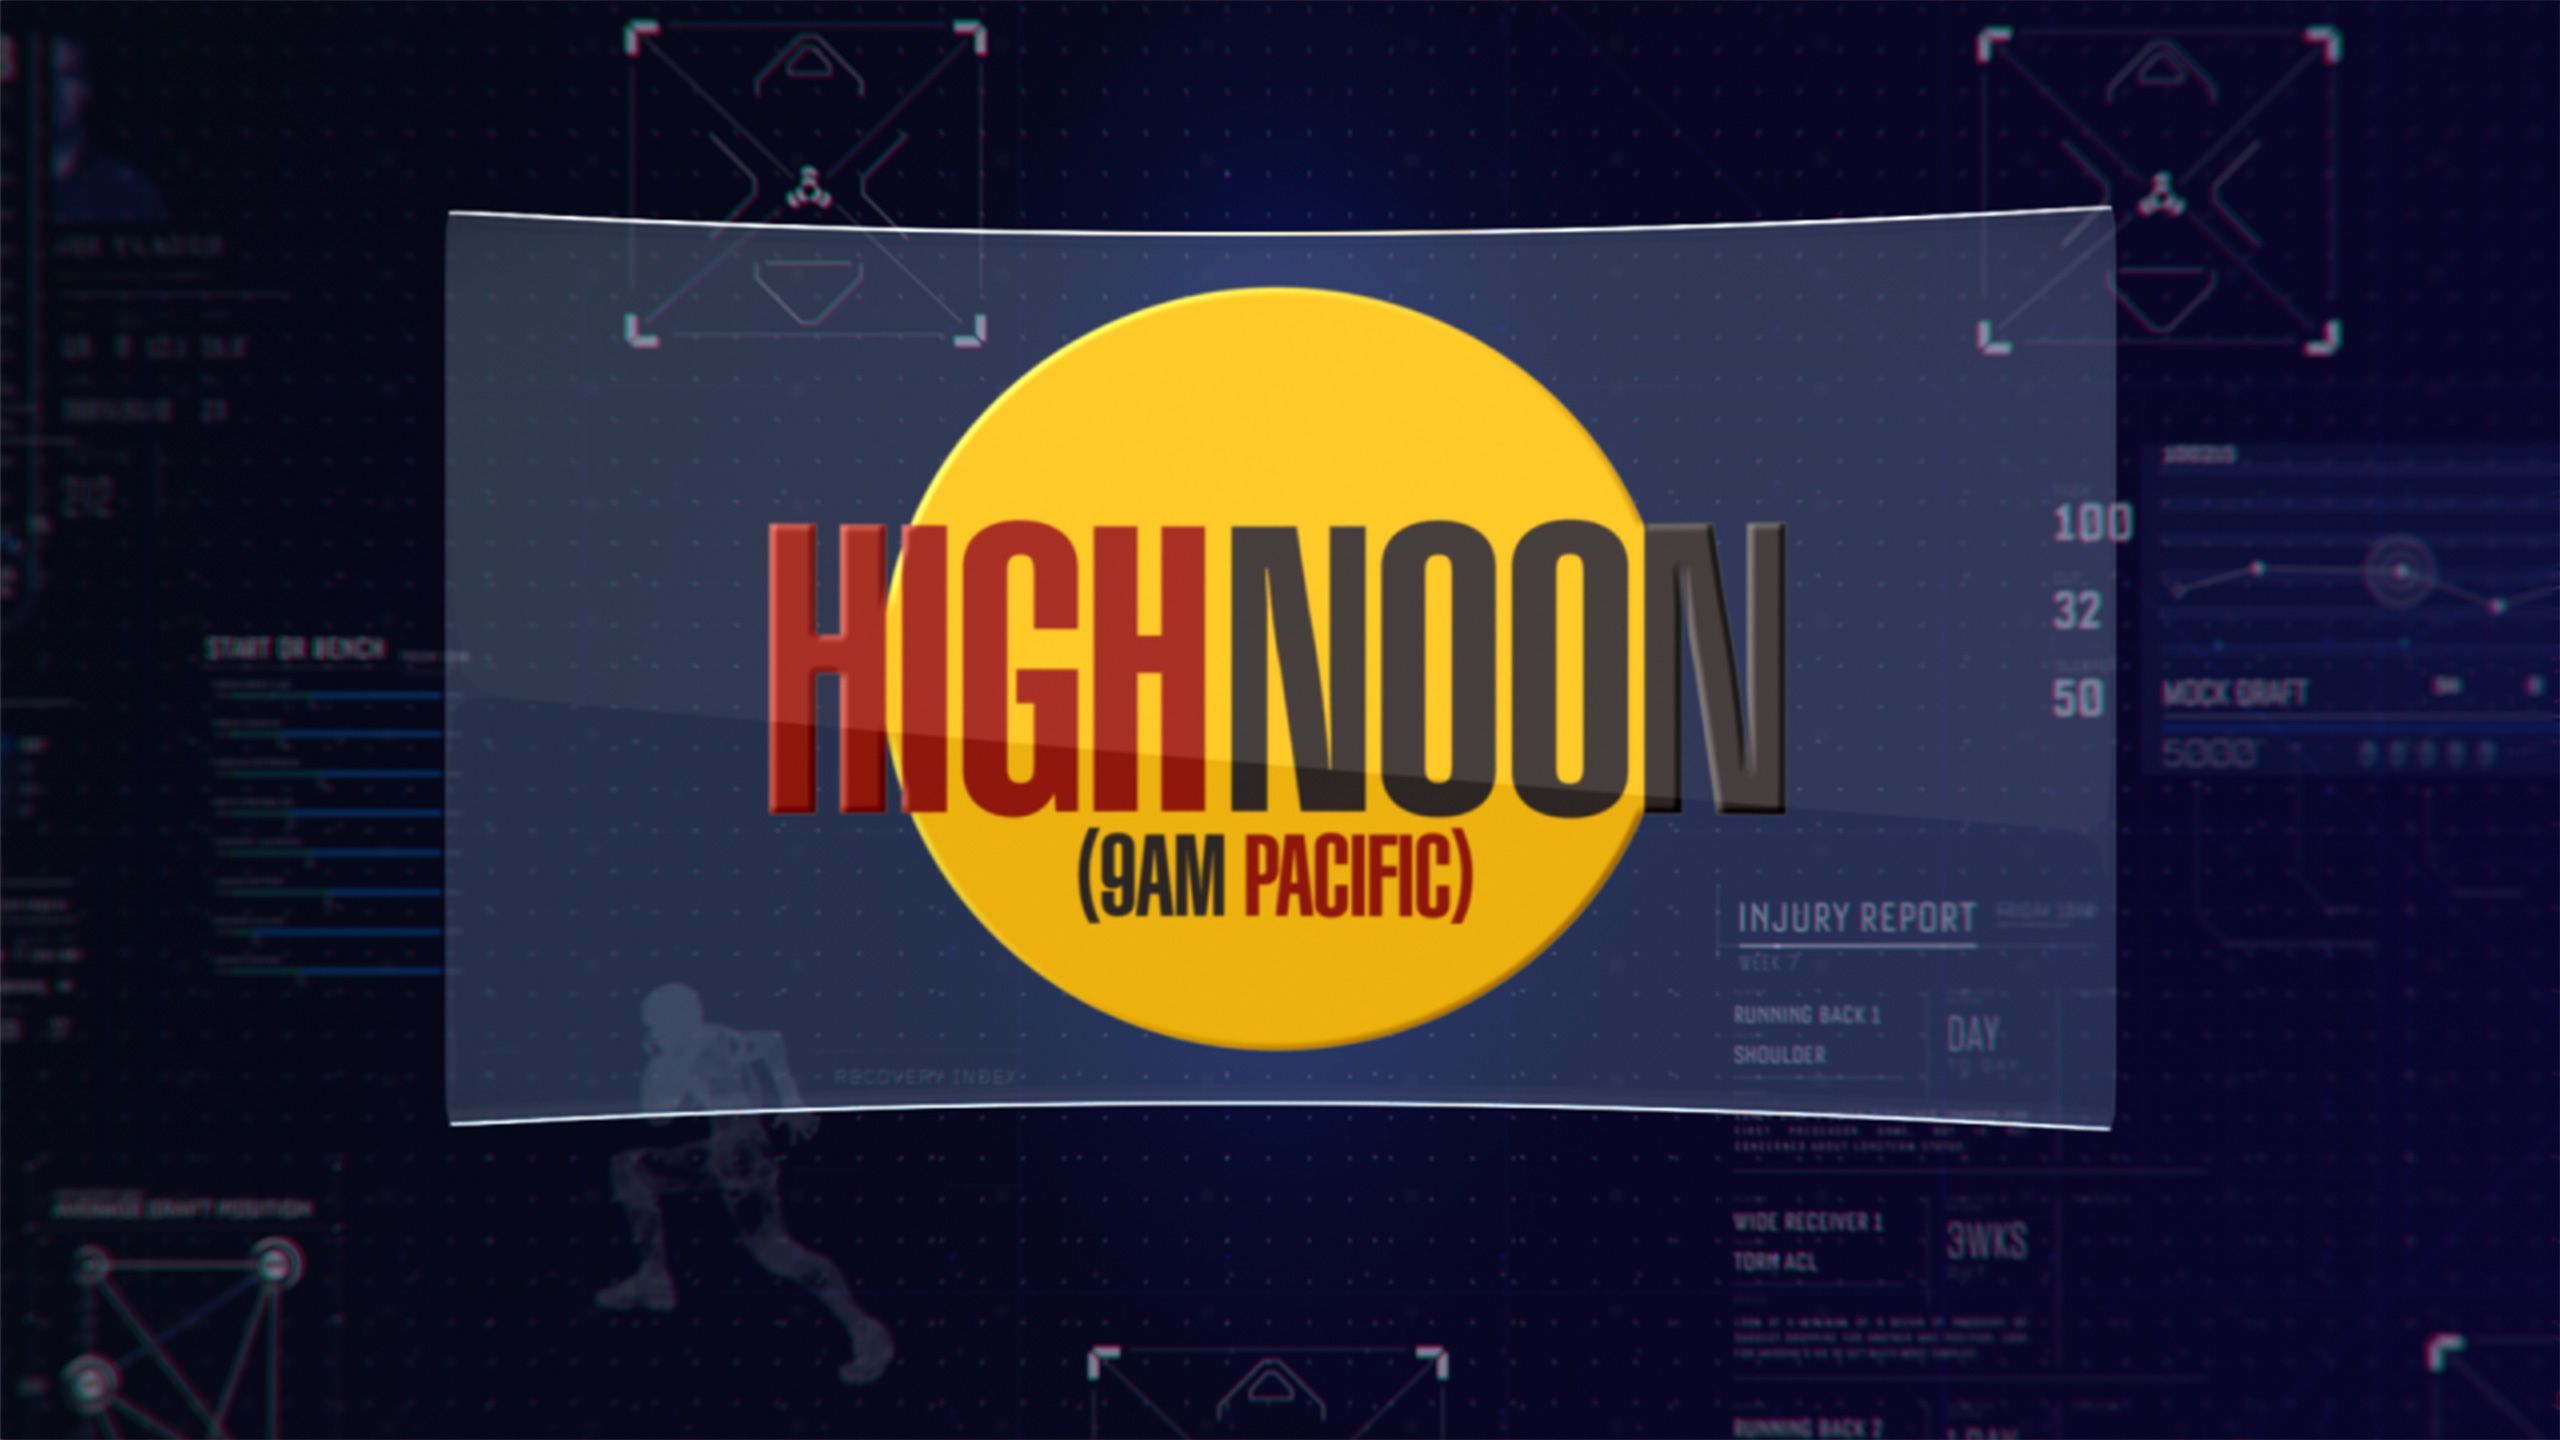 HIGH NOON (9am Pacific) as Part of The ESPN Fantasy Football Marathon